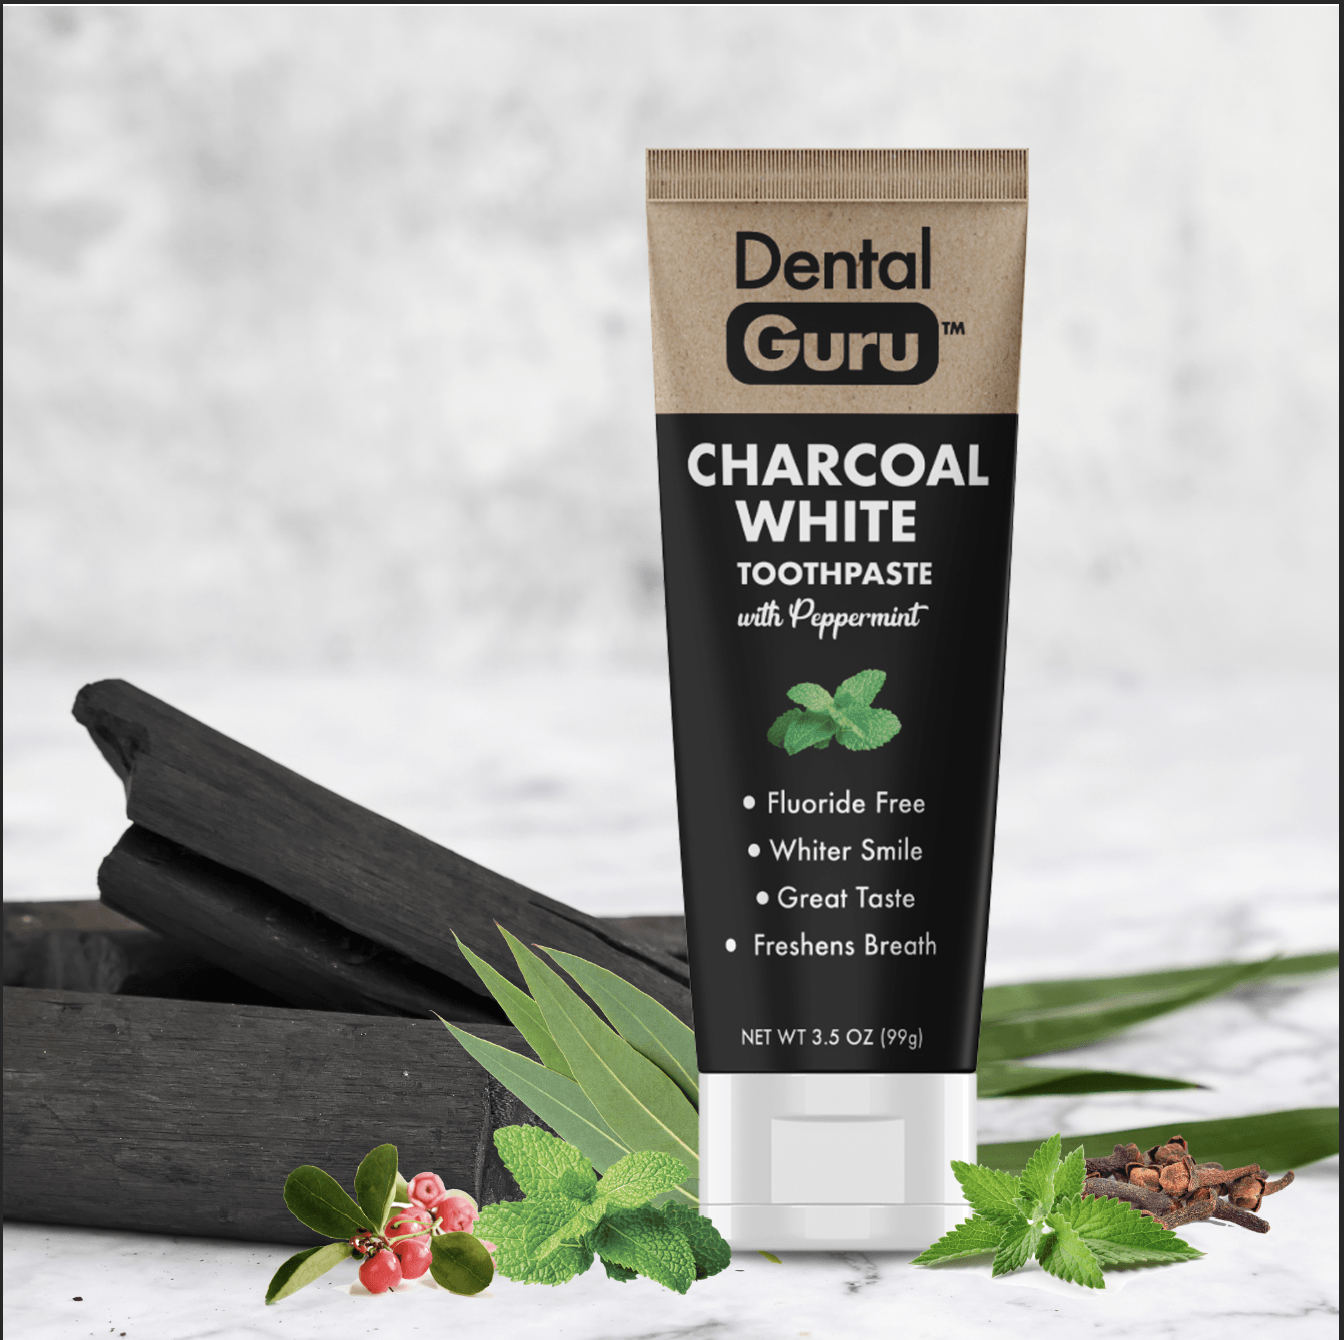 Activated Charcoal Toothpaste With Peppermint (6 Pack): Charcoal White not only lifts stains without harsh chemicals, but it also freshens breath with a blend of six natural essential oils headlined by peppermint for a great taste!